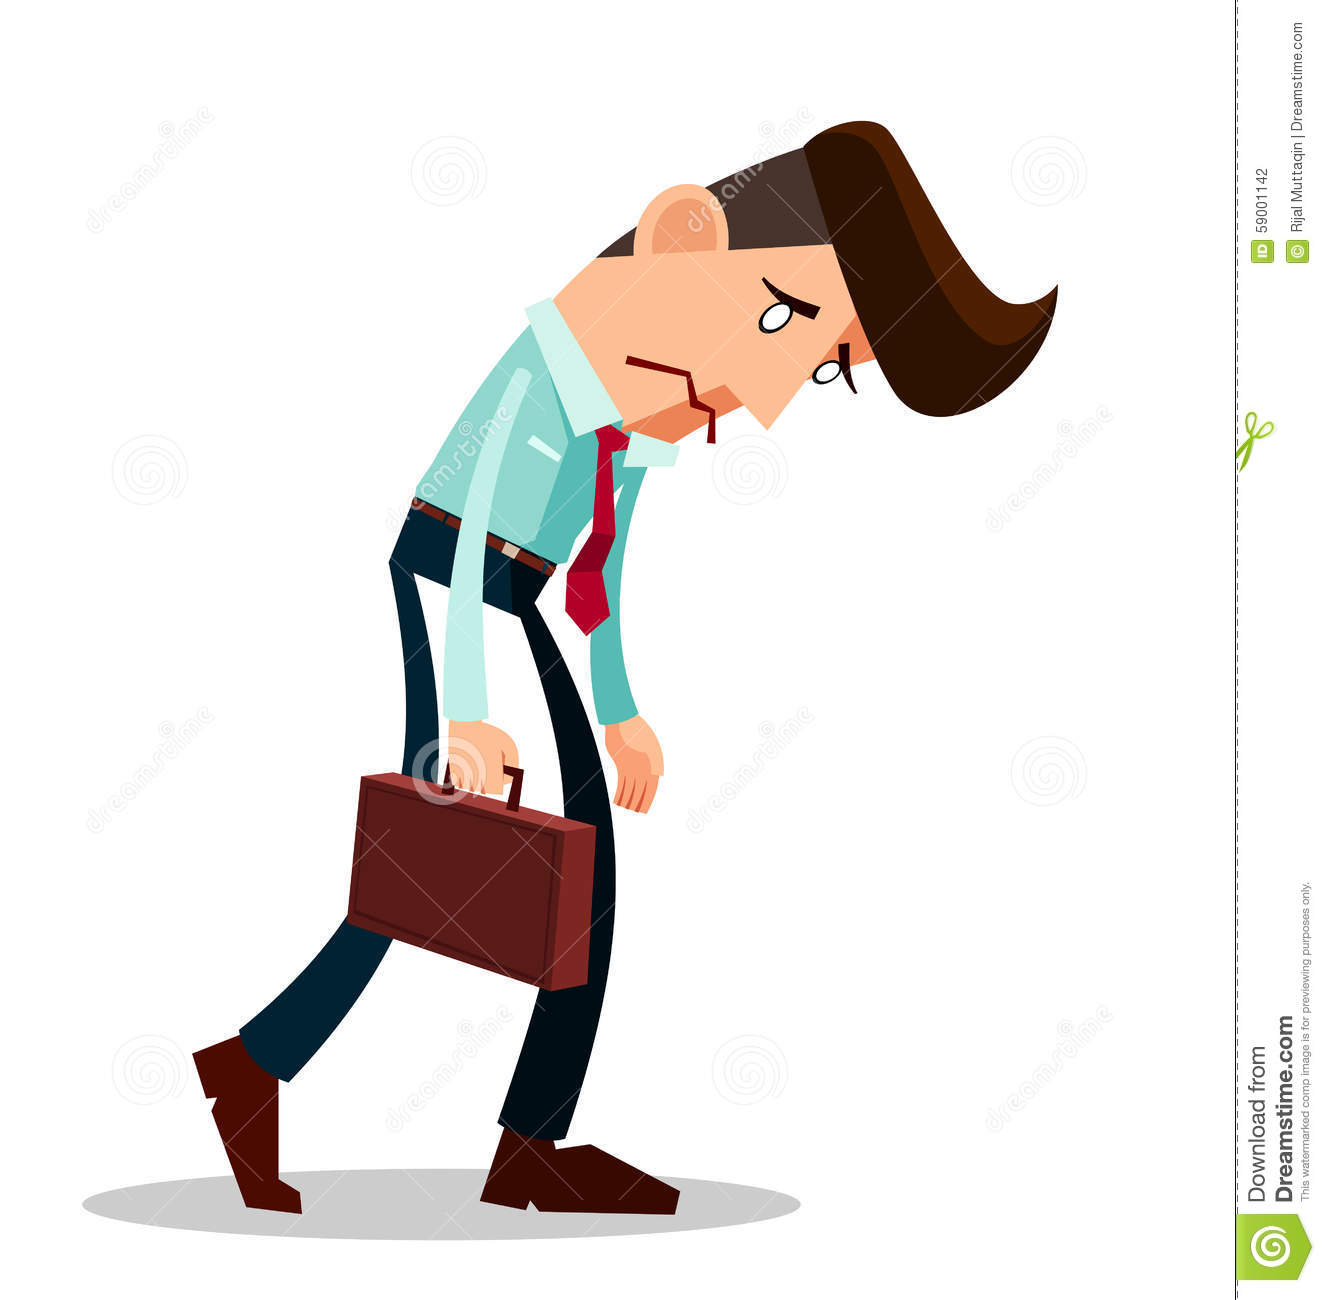 clipart frustrated man - photo #30